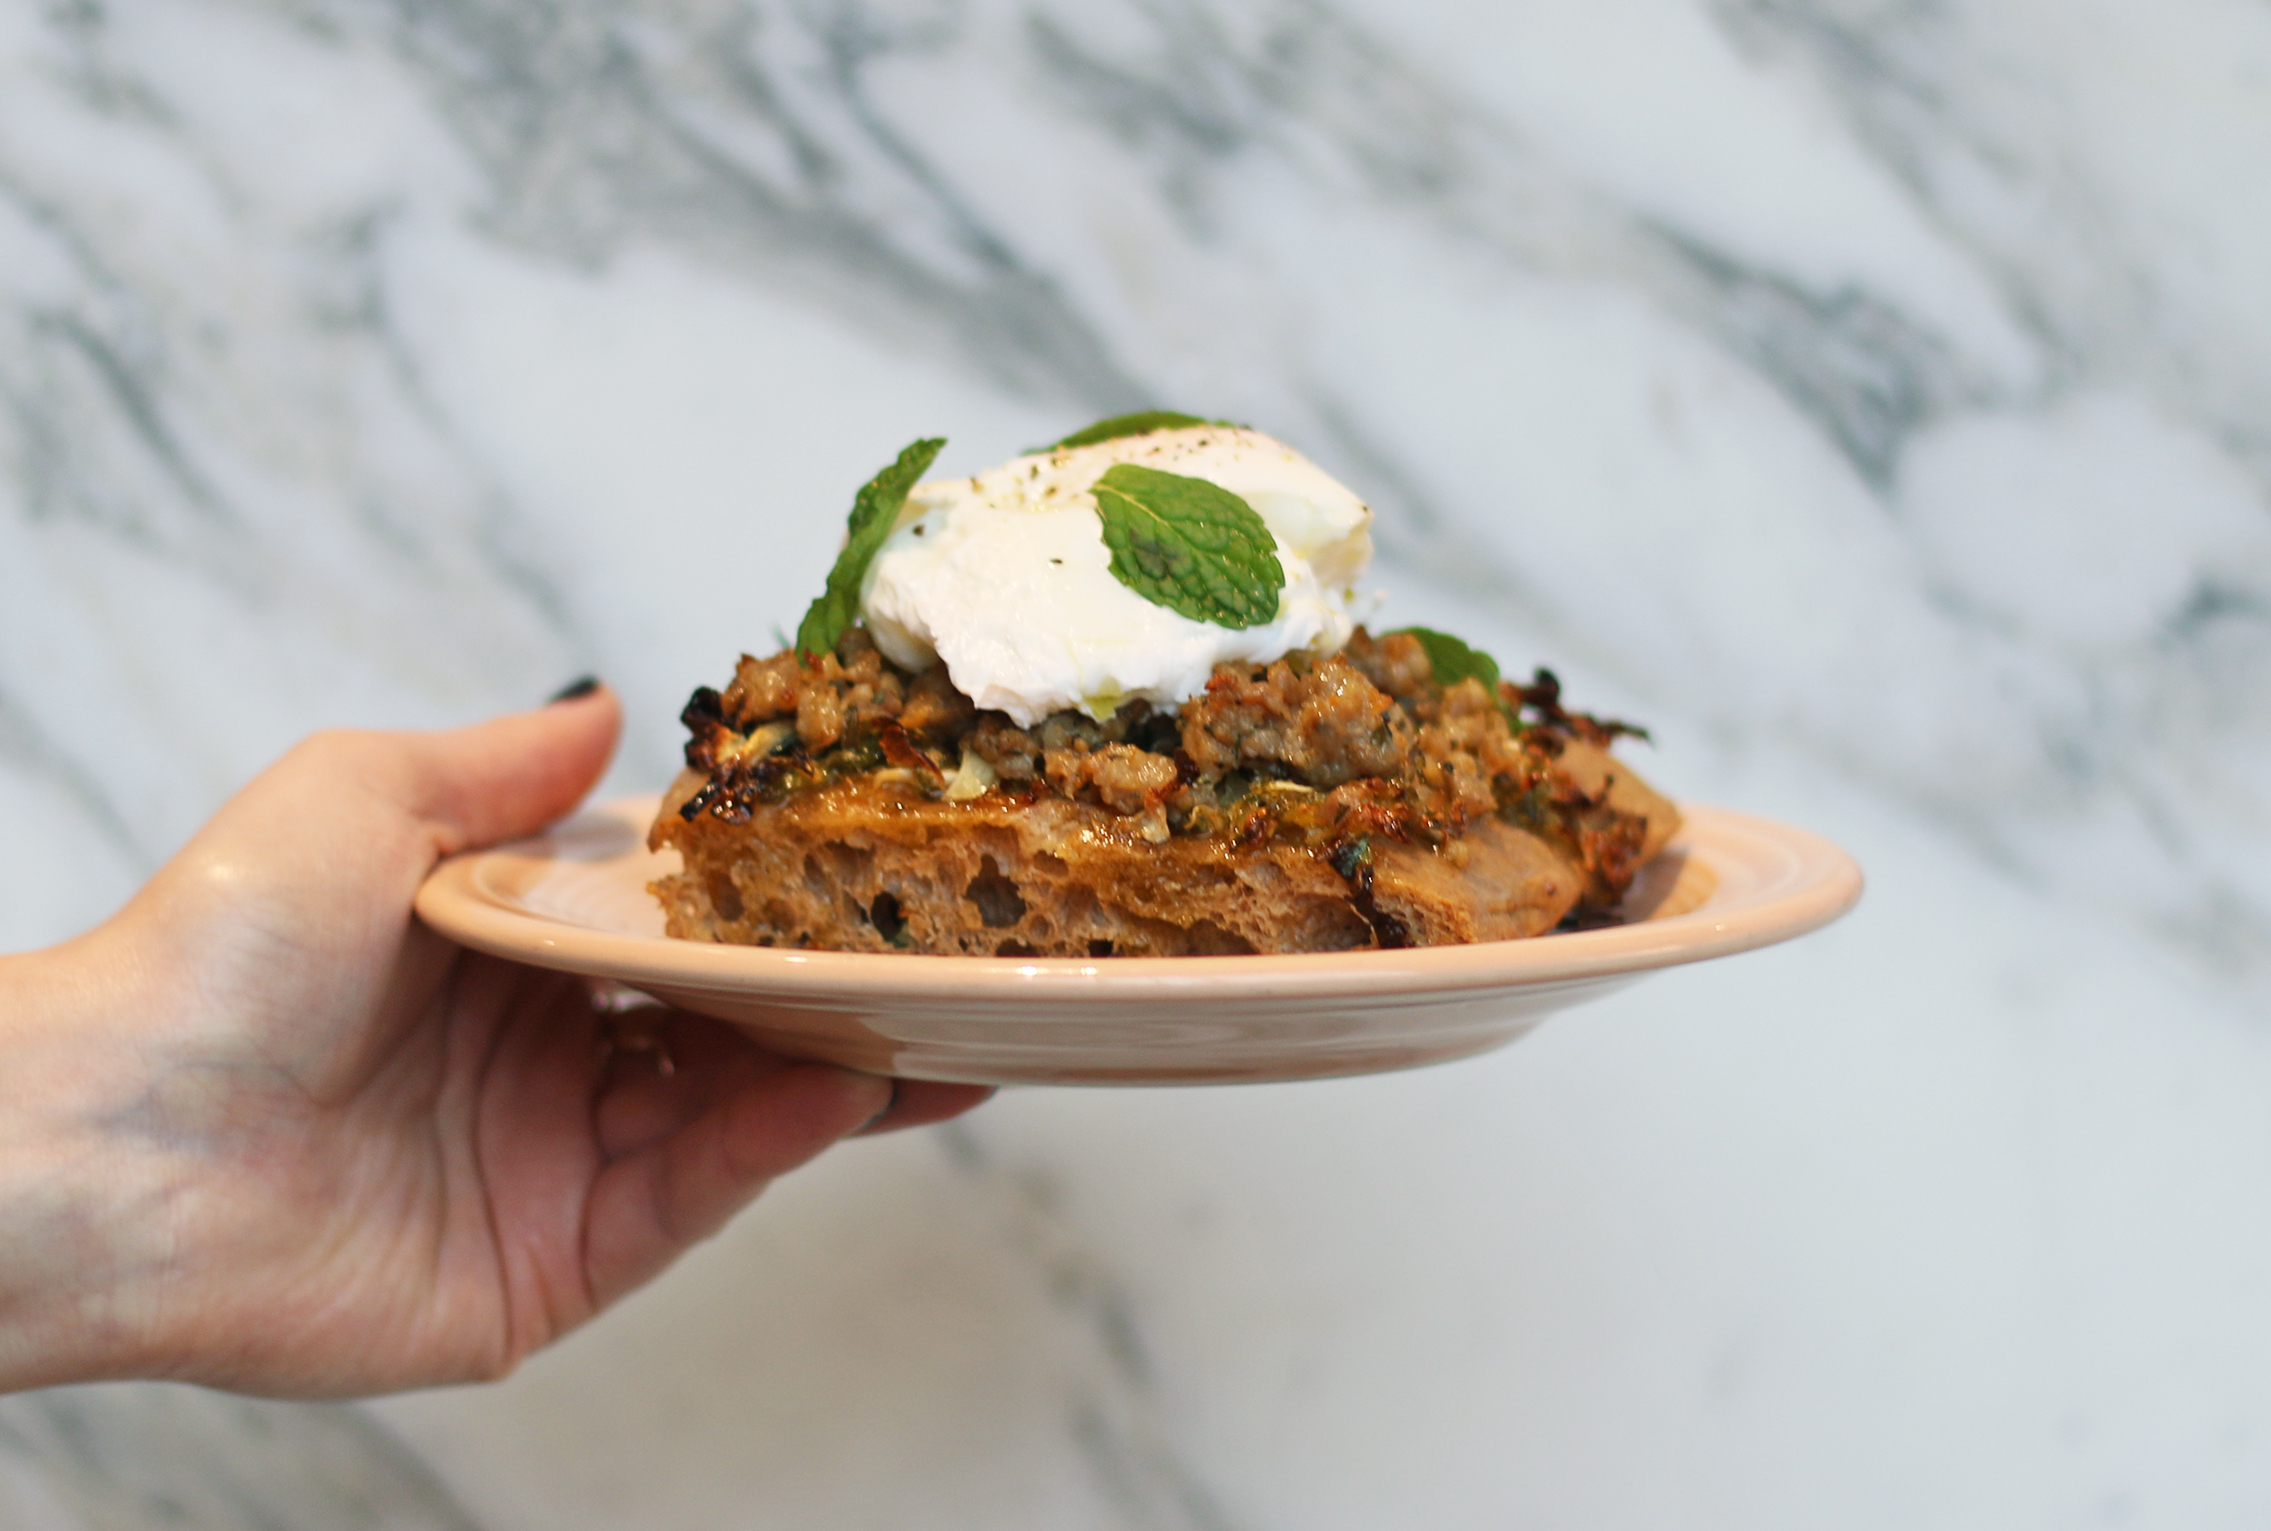 Focaccia Flatbread with Brussels Sprouts, Sausage, and Poached Egg